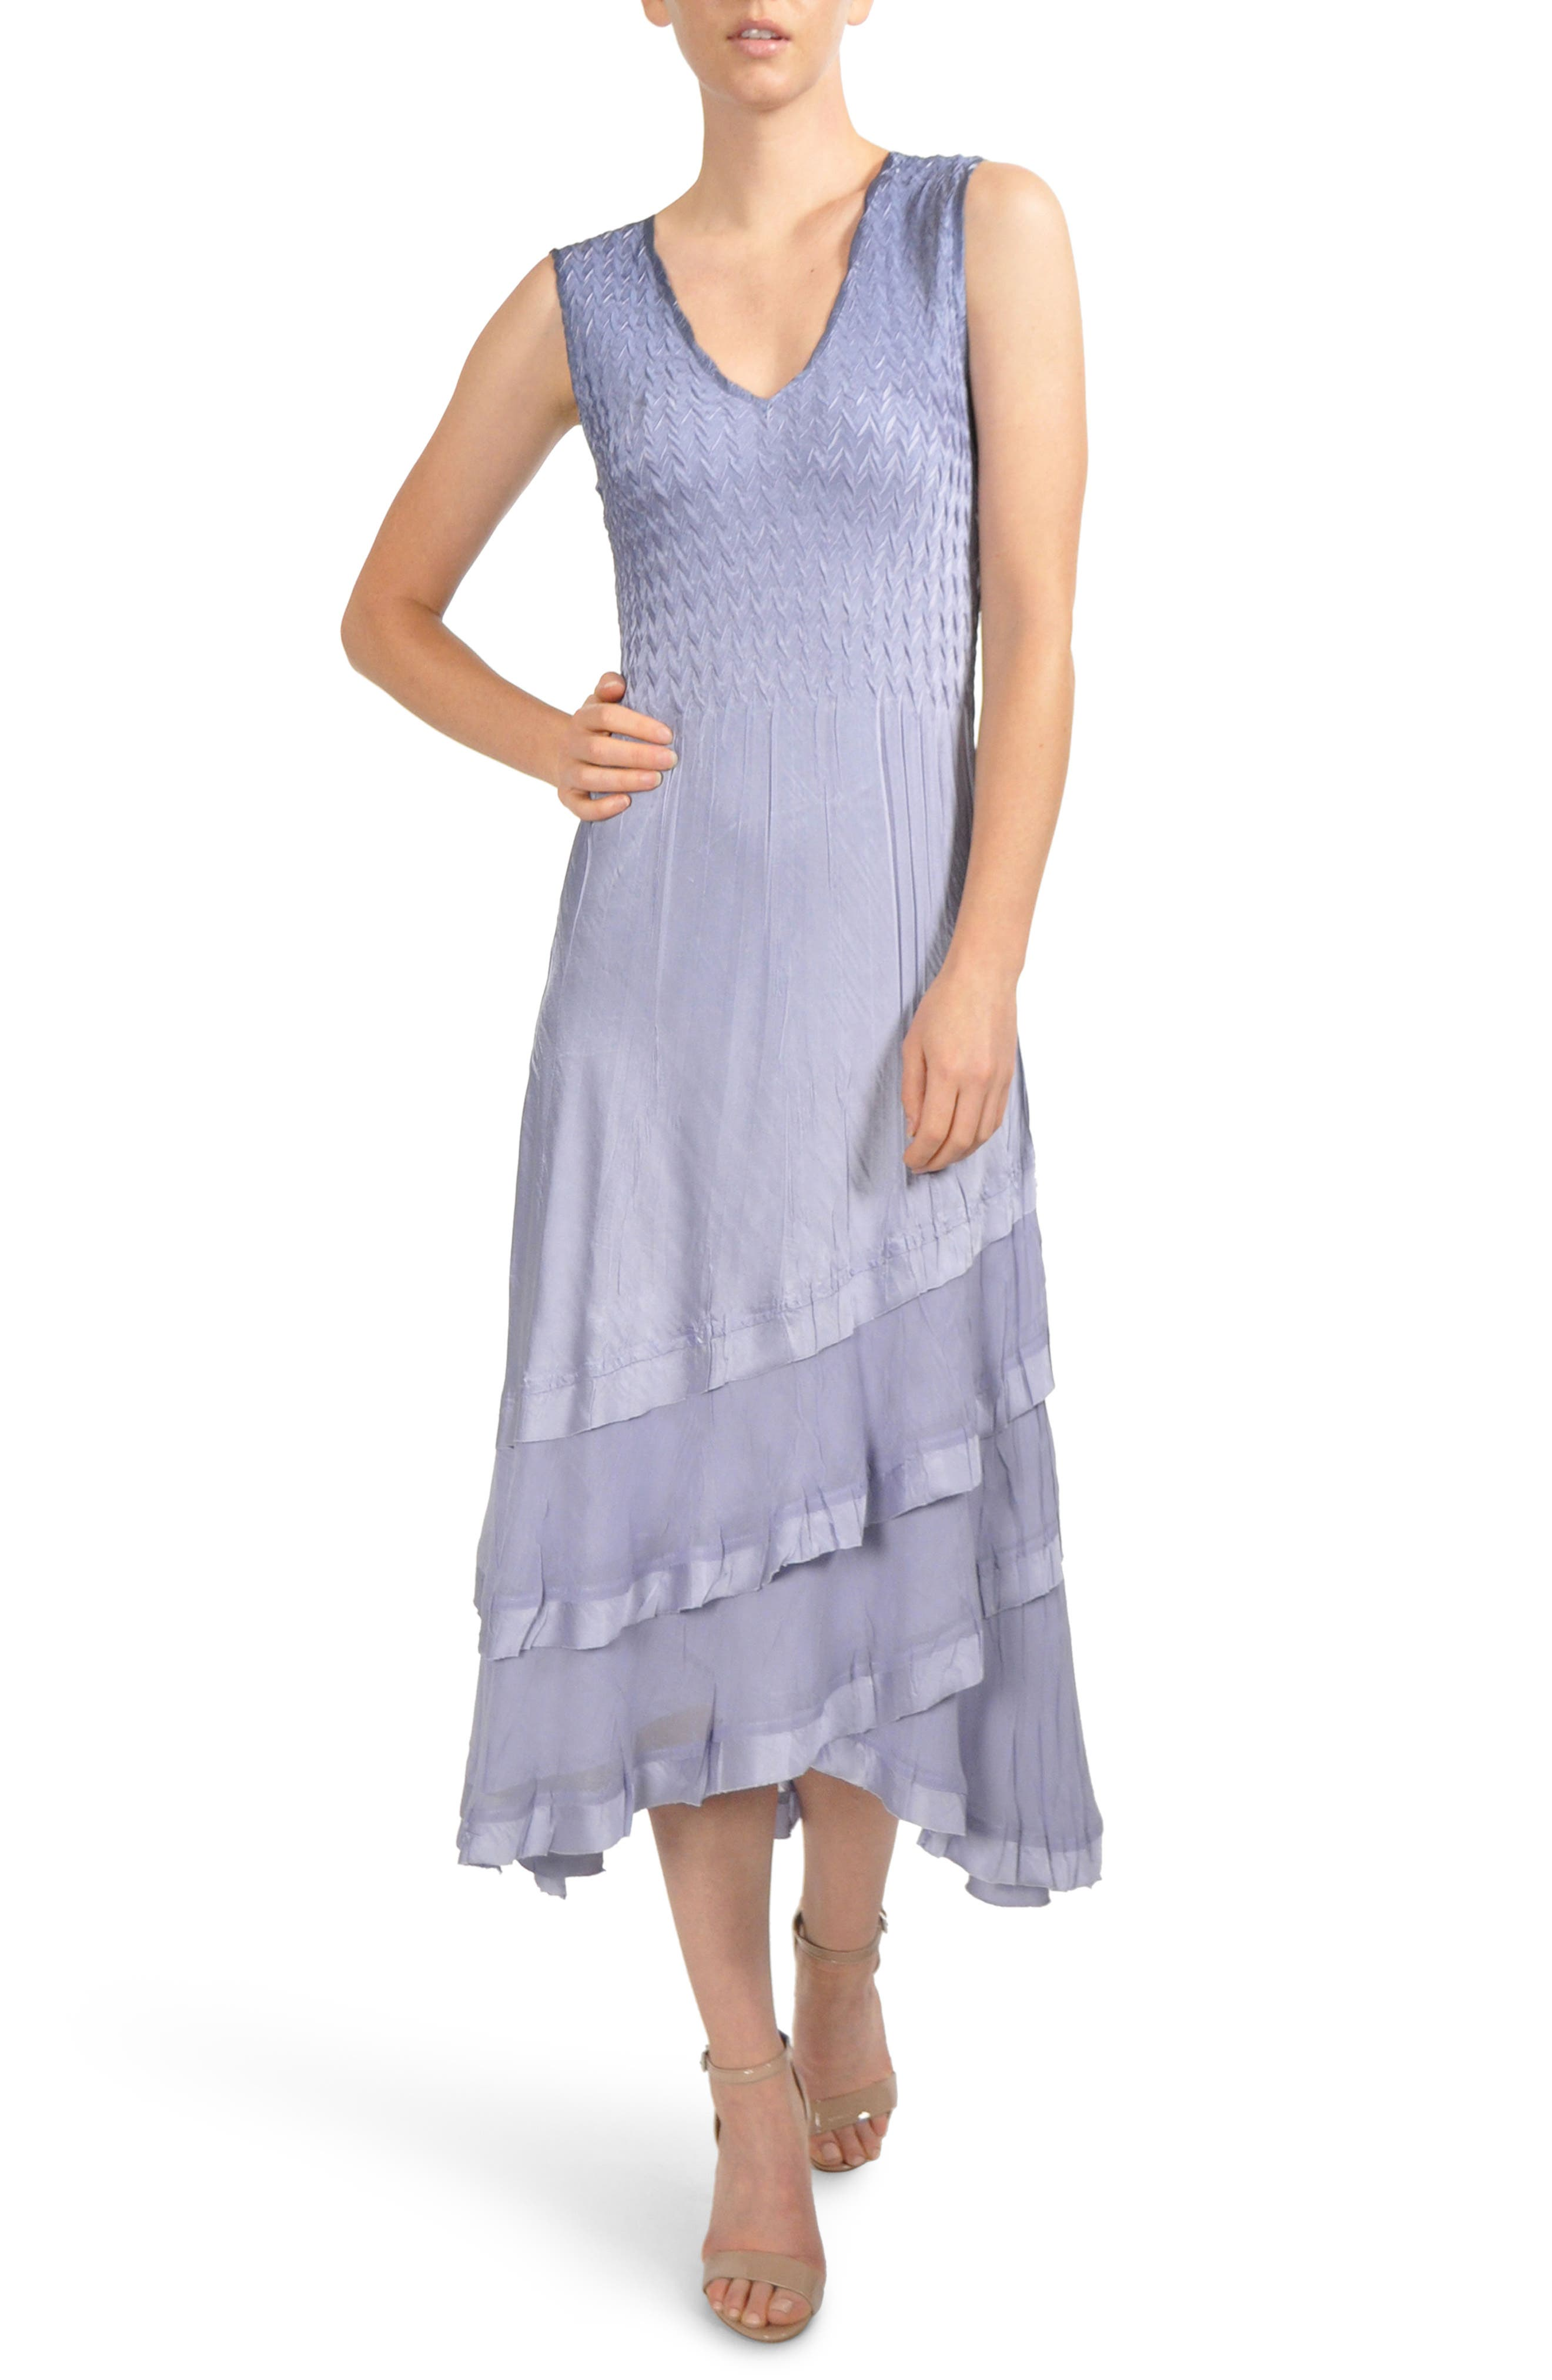 Charmeuse & Chiffon Tiered Hem Dress with Jacket,                             Main thumbnail 1, color,                             LAVENDER GREY BLUE OMBRE